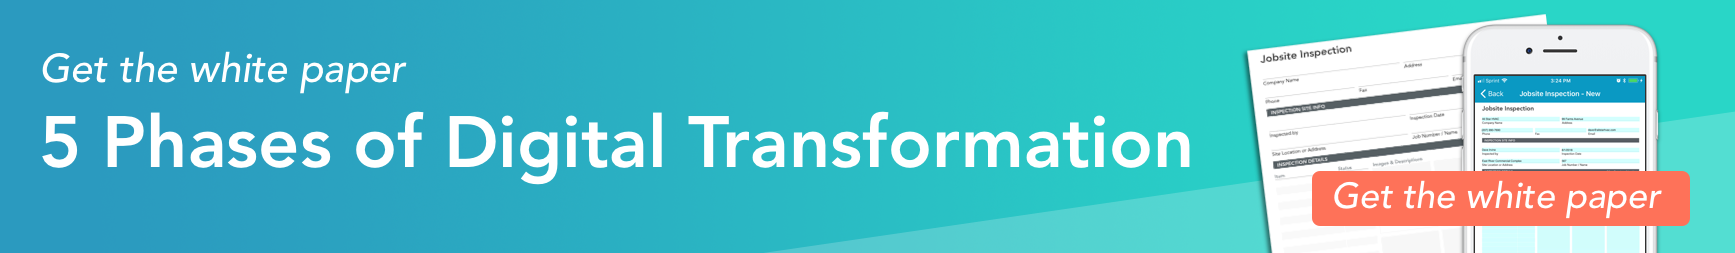 Get the white paper, '5 Phases of Digital Transformation'